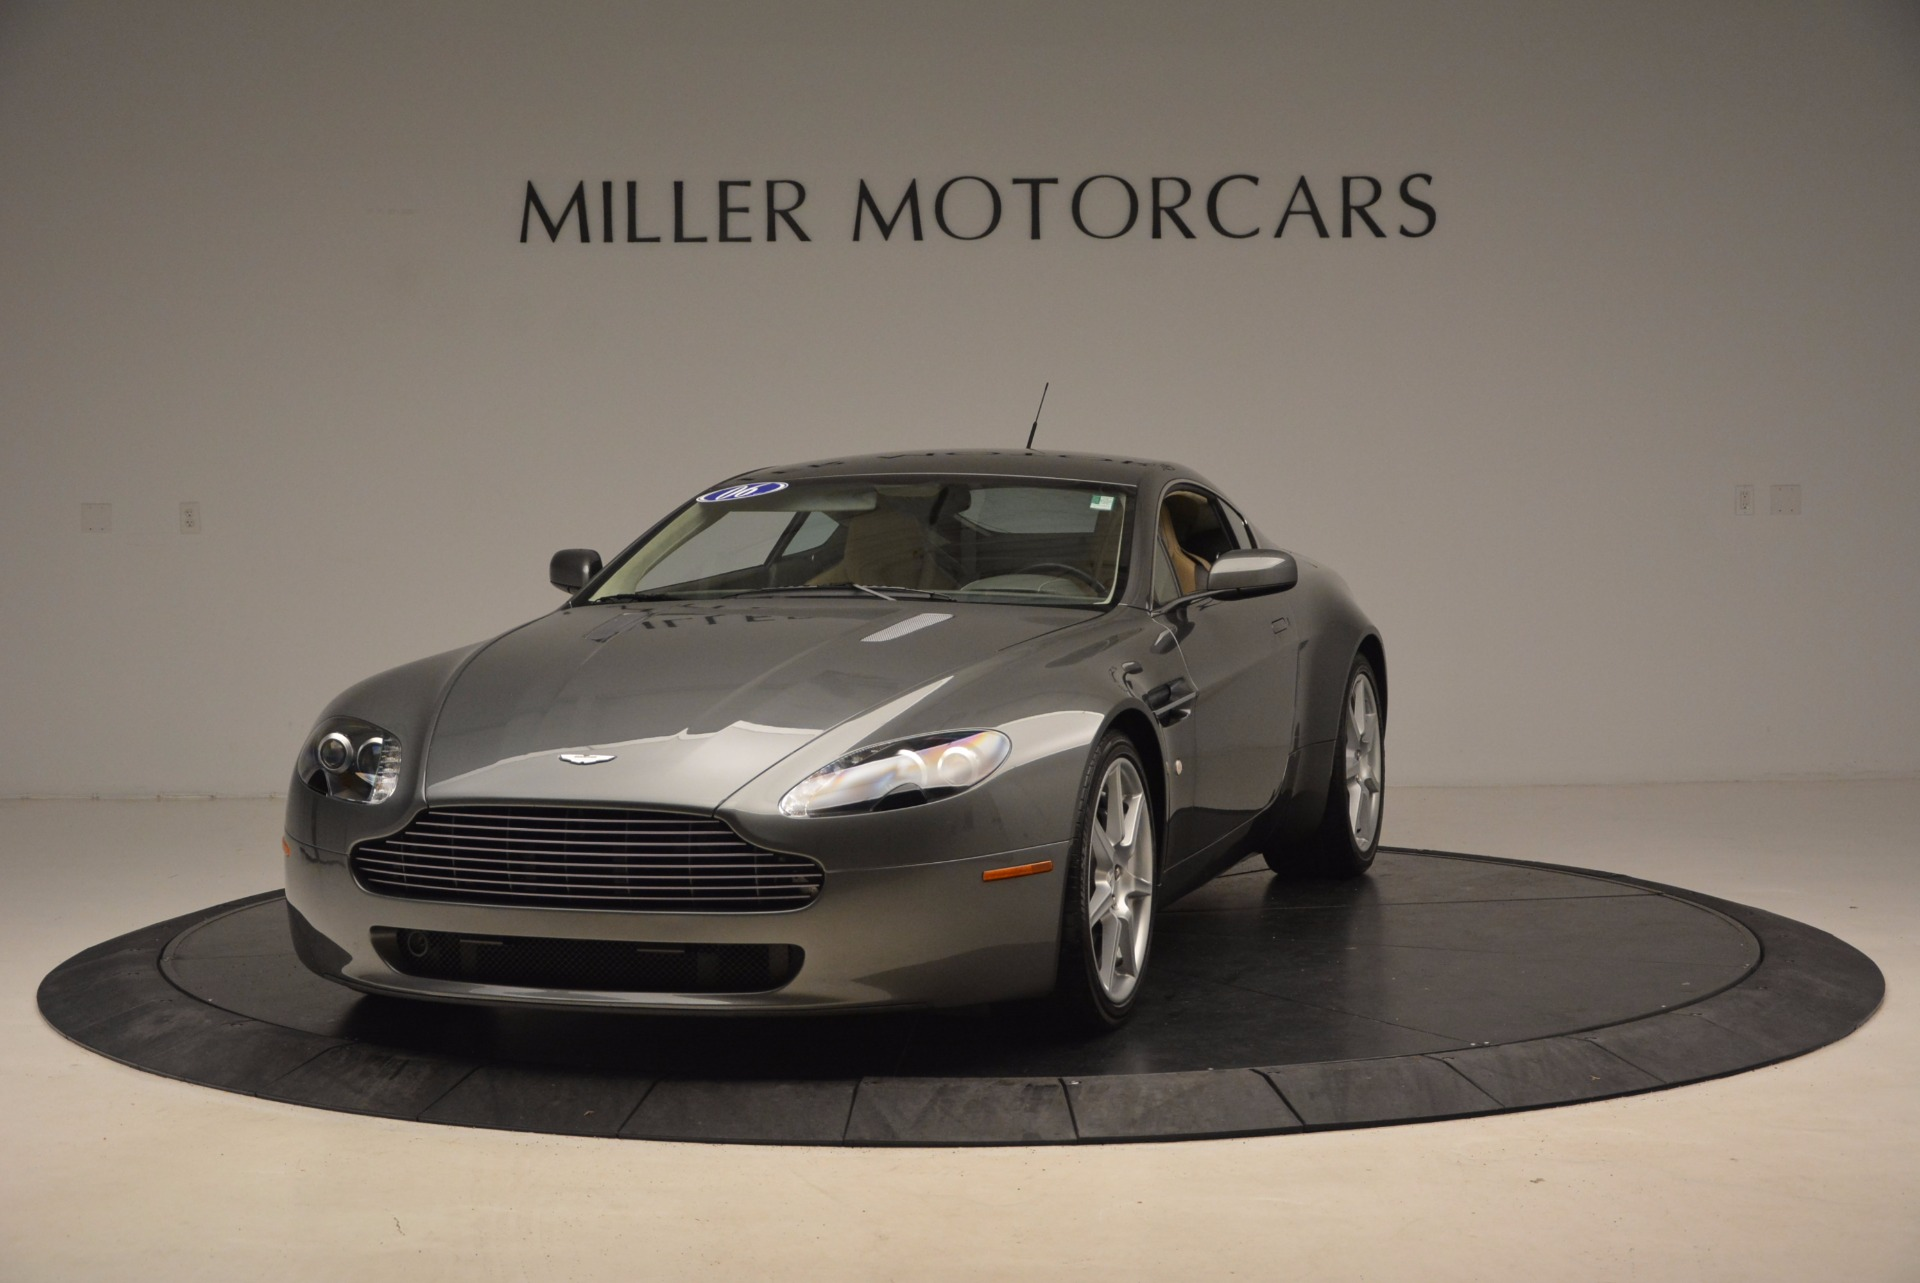 Used 2006 Aston Martin V8 Vantage for sale Sold at Bugatti of Greenwich in Greenwich CT 06830 1